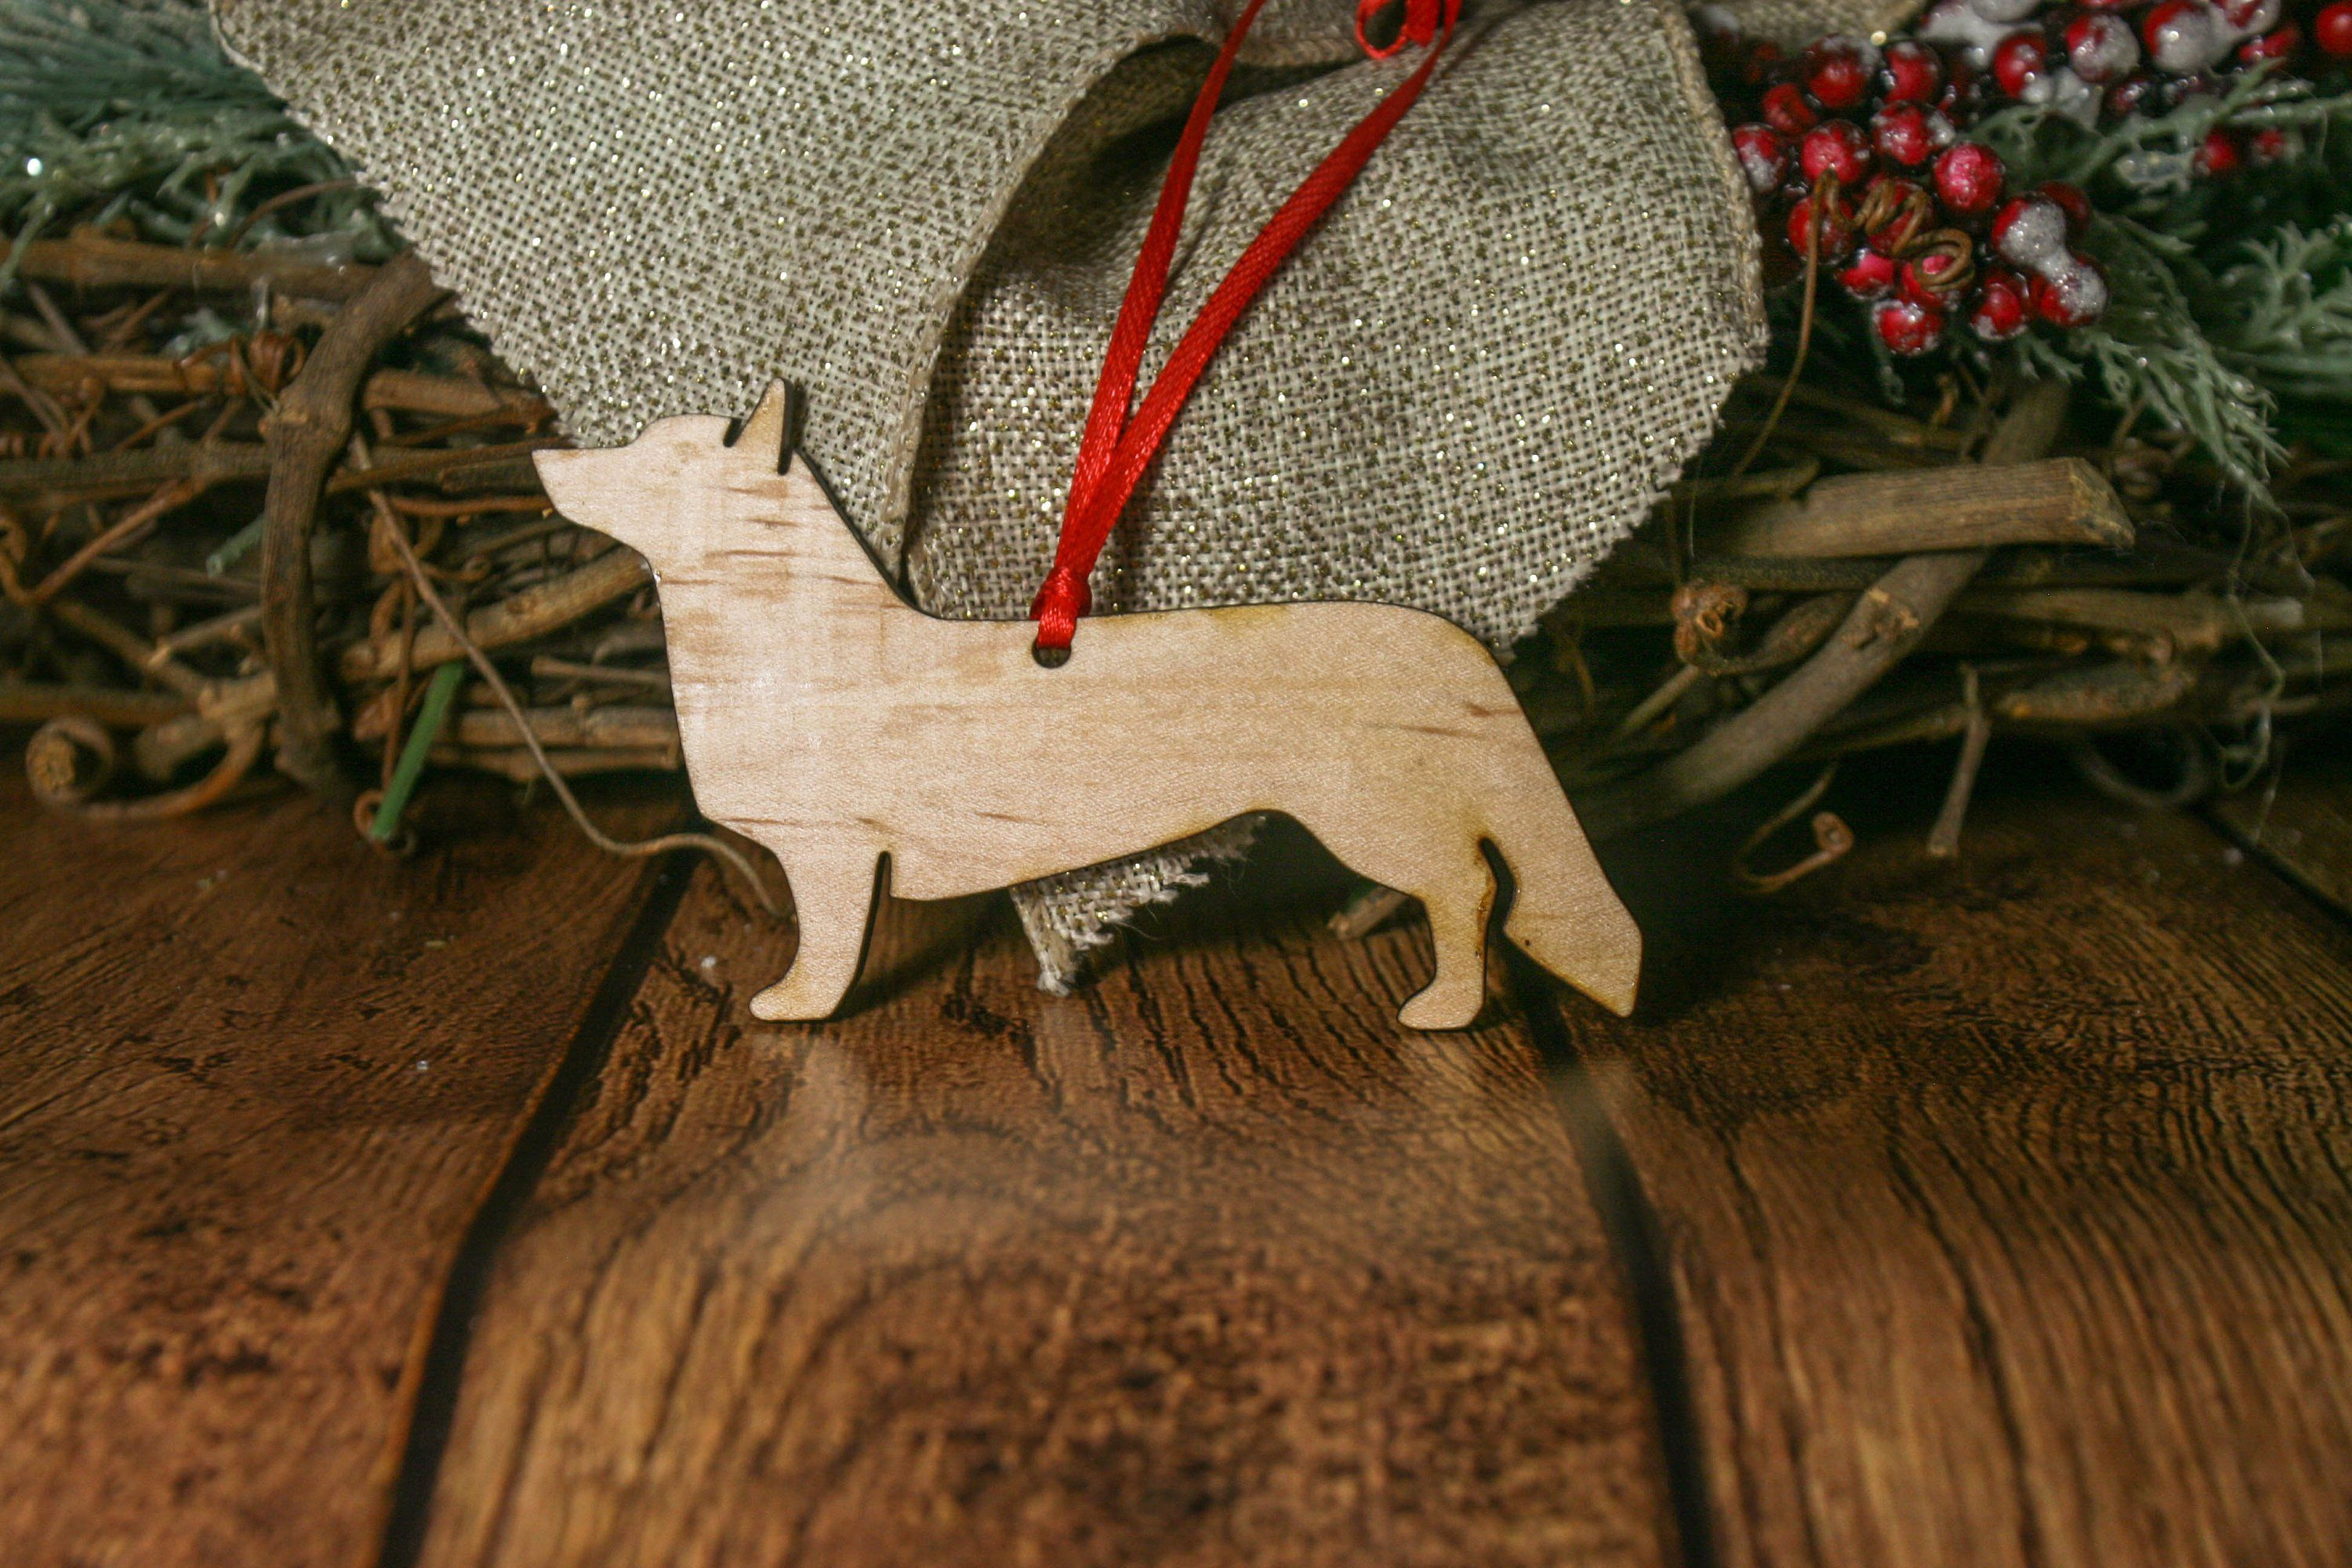 Cardigan Welsh Corgi Dog Ornament Free Shipping 17 99 Uniquely Crafted With Virginia Black Personalized Dog Ornament Custom Dog Ornament Dog Ornaments